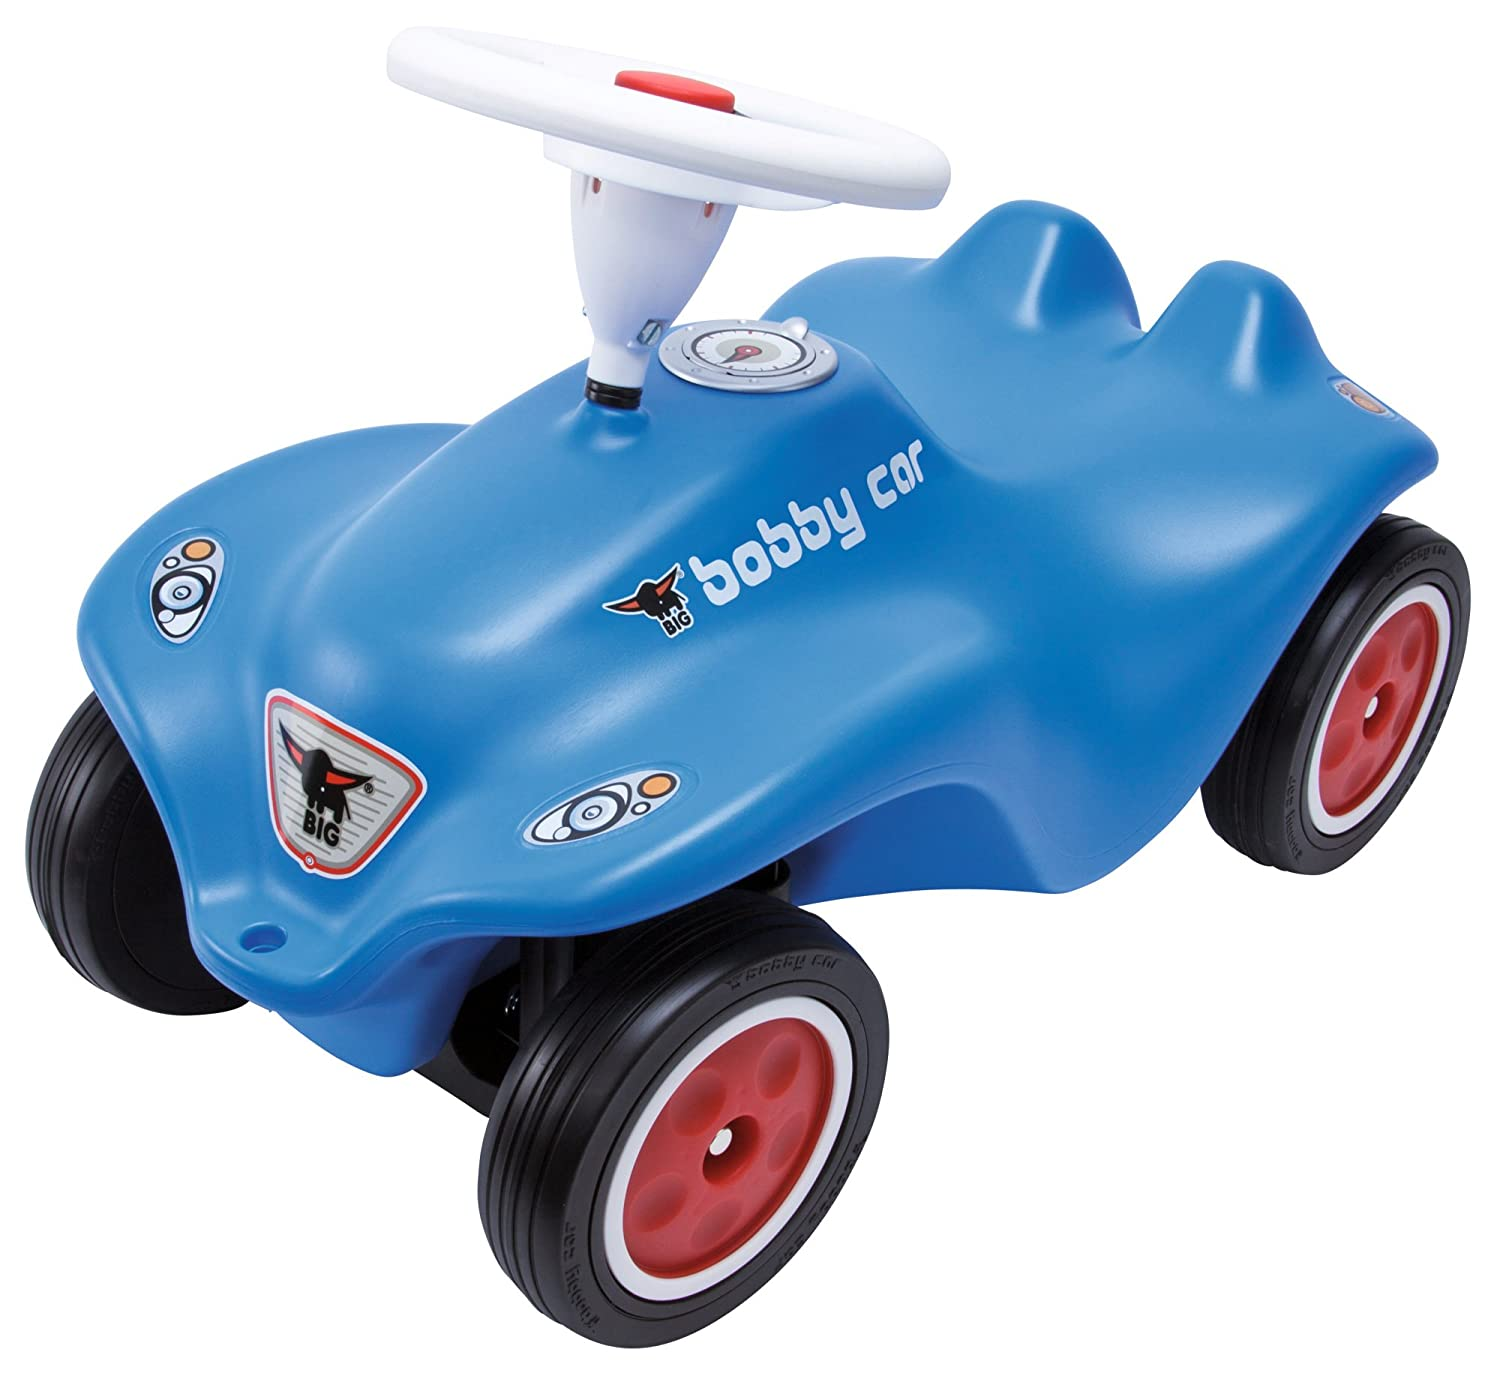 BIG 56201 - New Bobby Car, blau 800056201